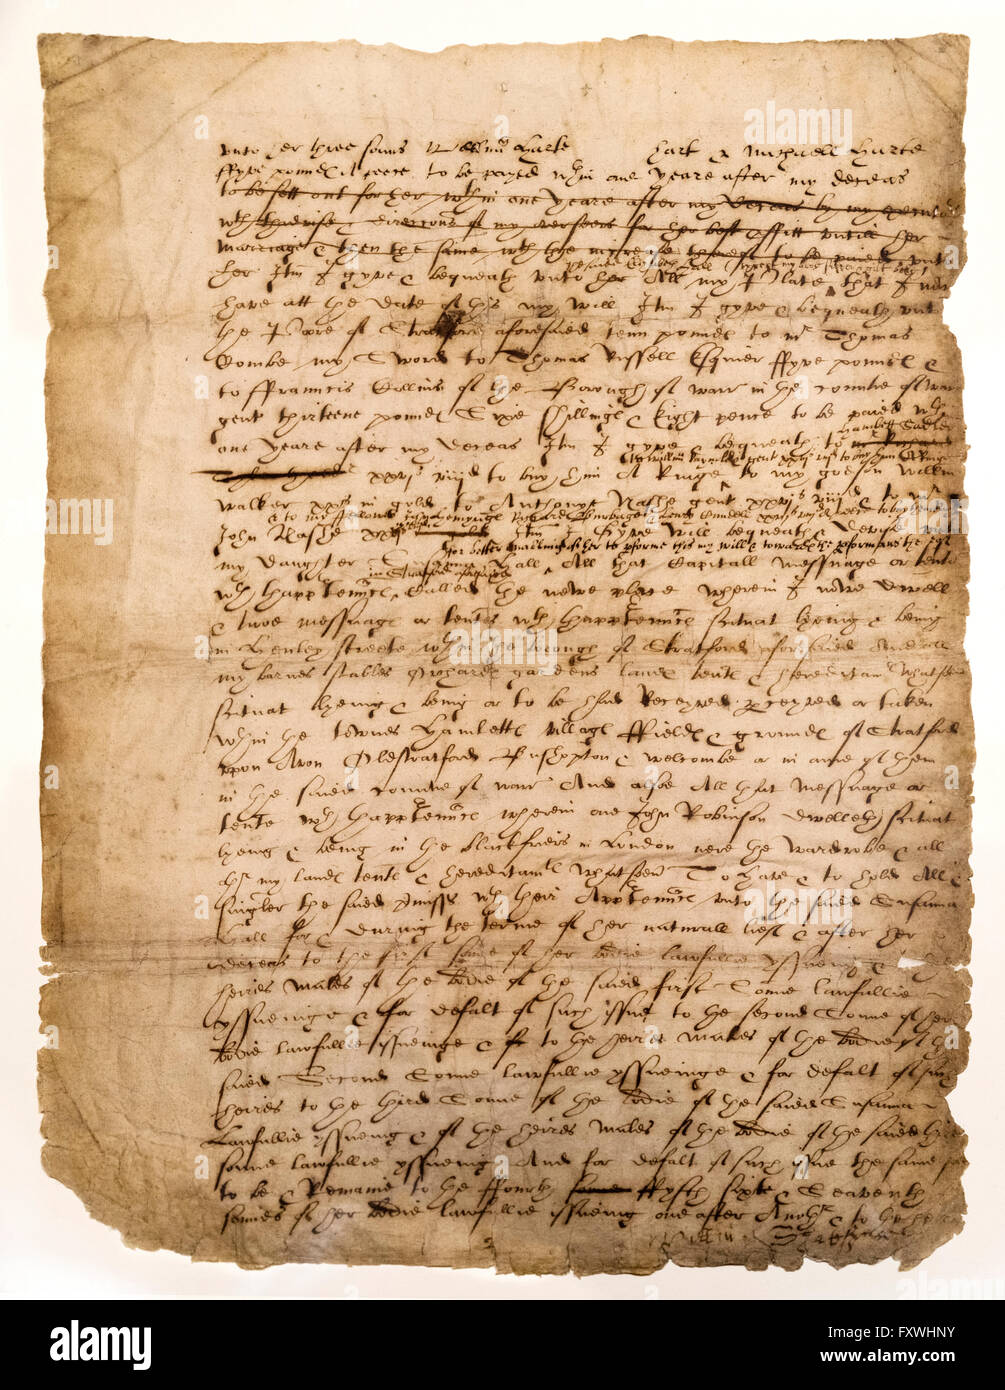 William Shakespeare's last will and testament (Page 2 of 3) - Stock Image